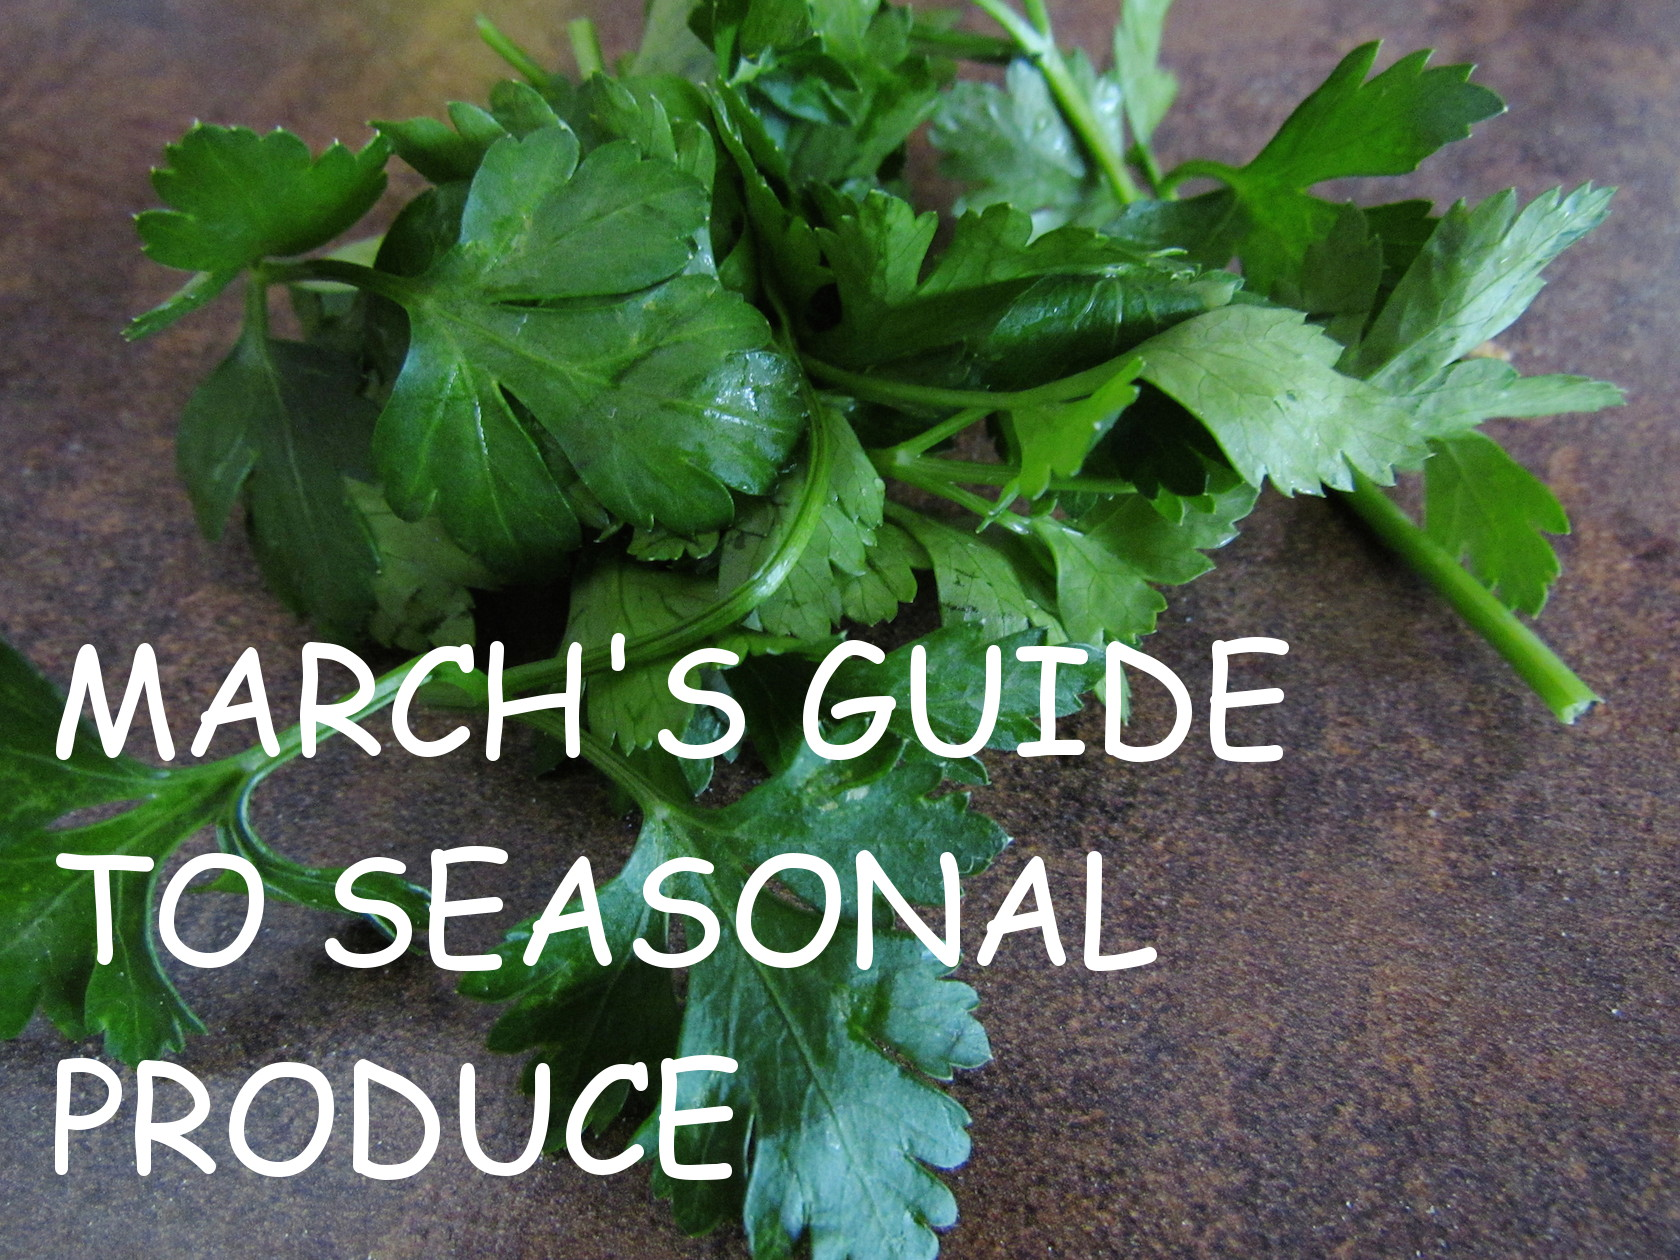 march guide to seasonal produce | www.savormania.com